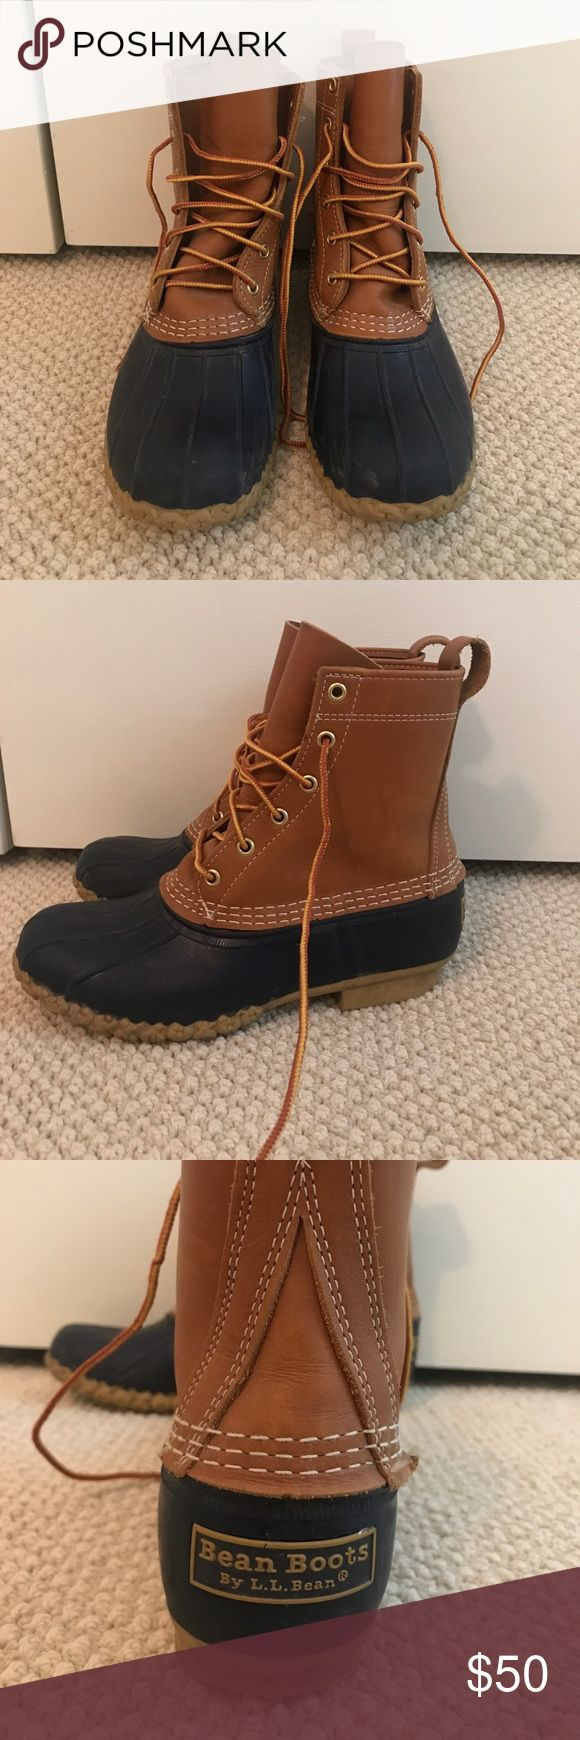 Classic L.L. Bean boots! Classic LL bean duck boots! In great condition gently worn! Navy and tan! Rubber on toe and leather! Great for all weather! L.L. Bean Shoes Winter & Rain Boots